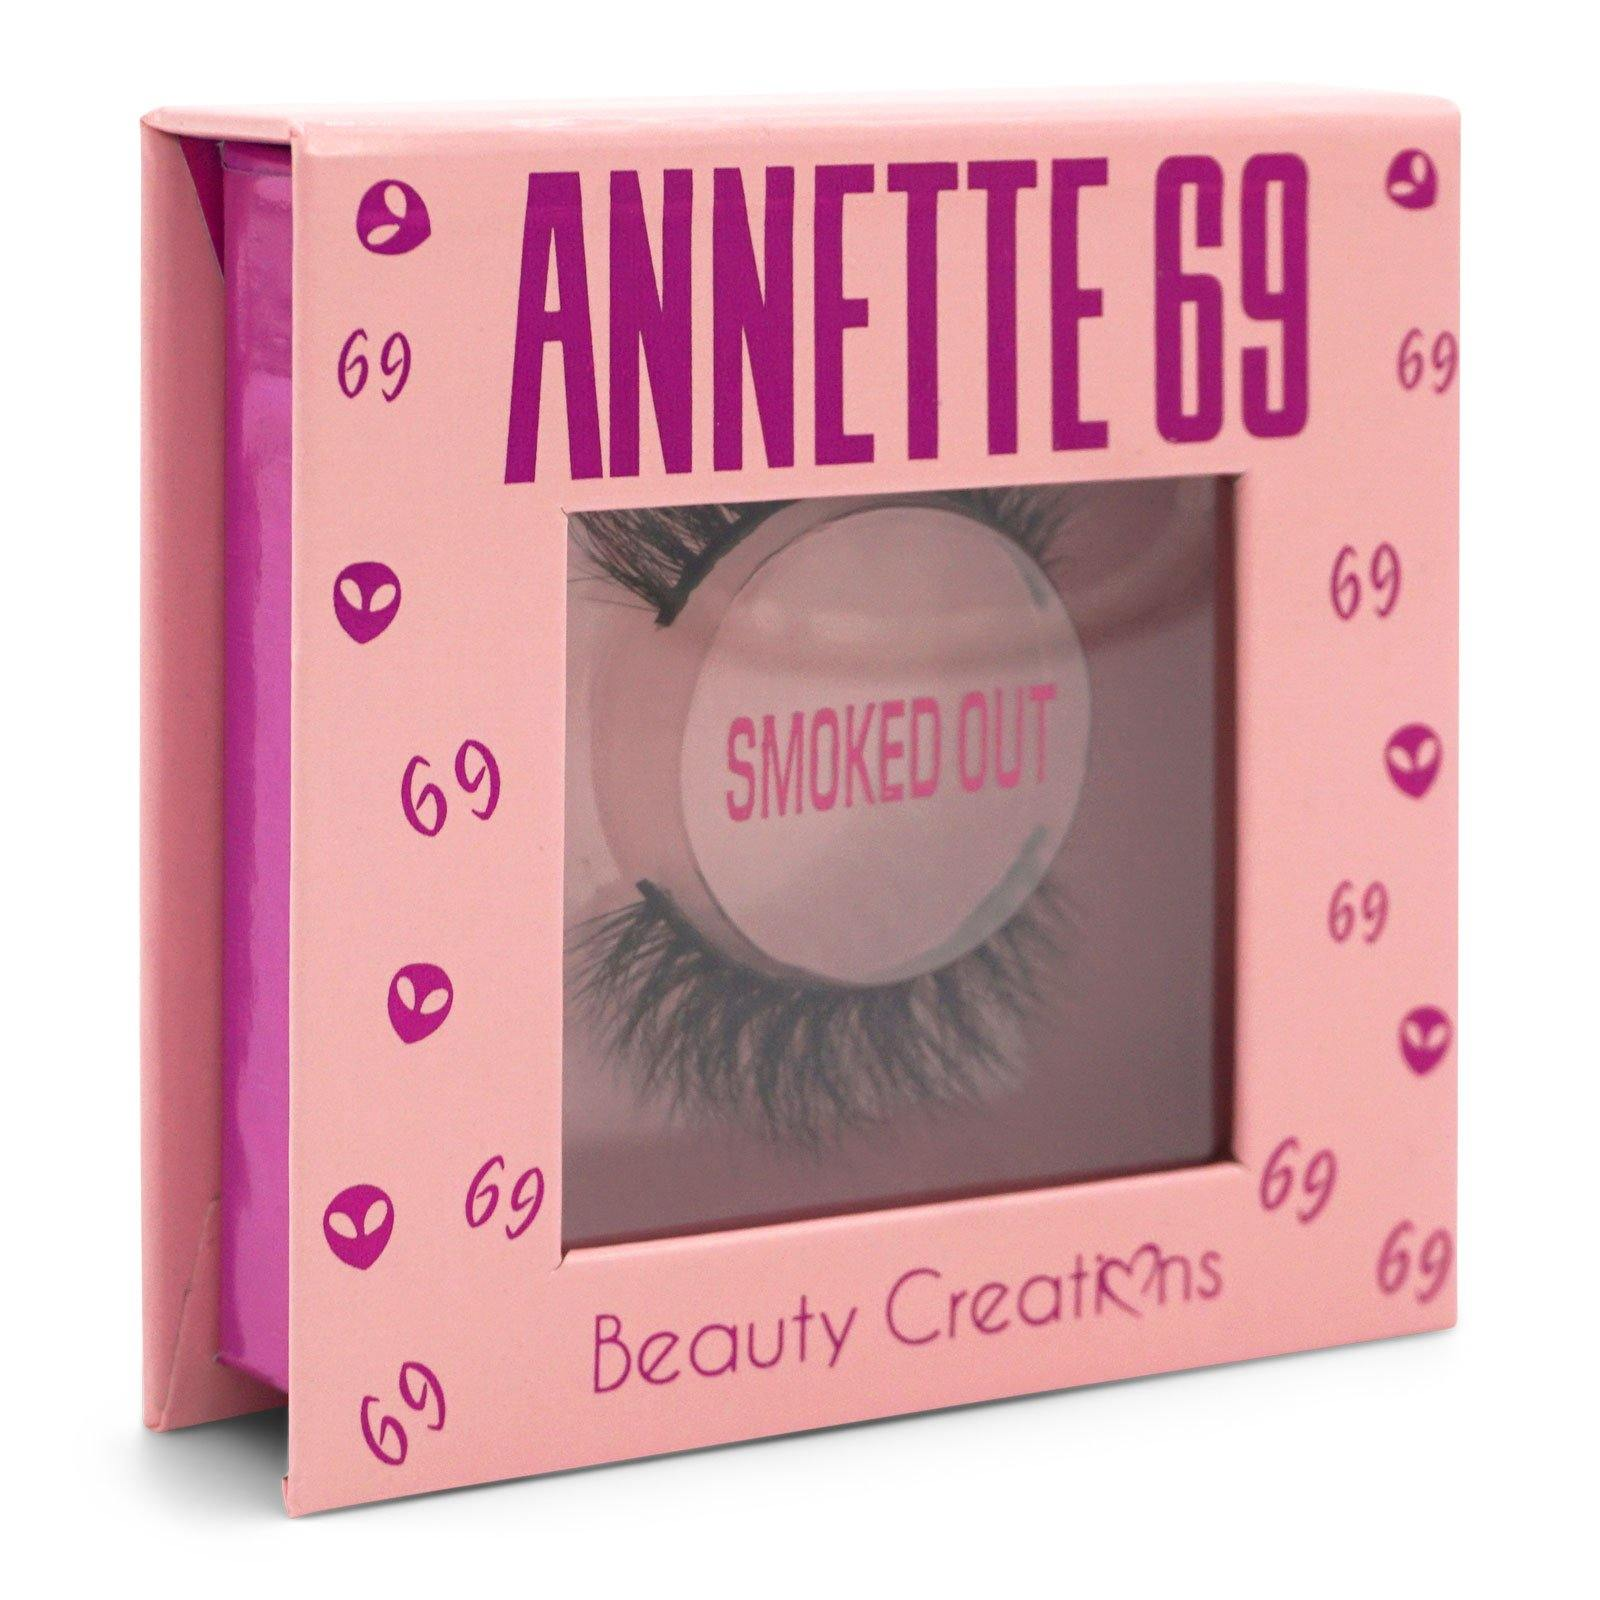 Beauty Creations - Annette 69 Eyelash #ELA (11/cs)